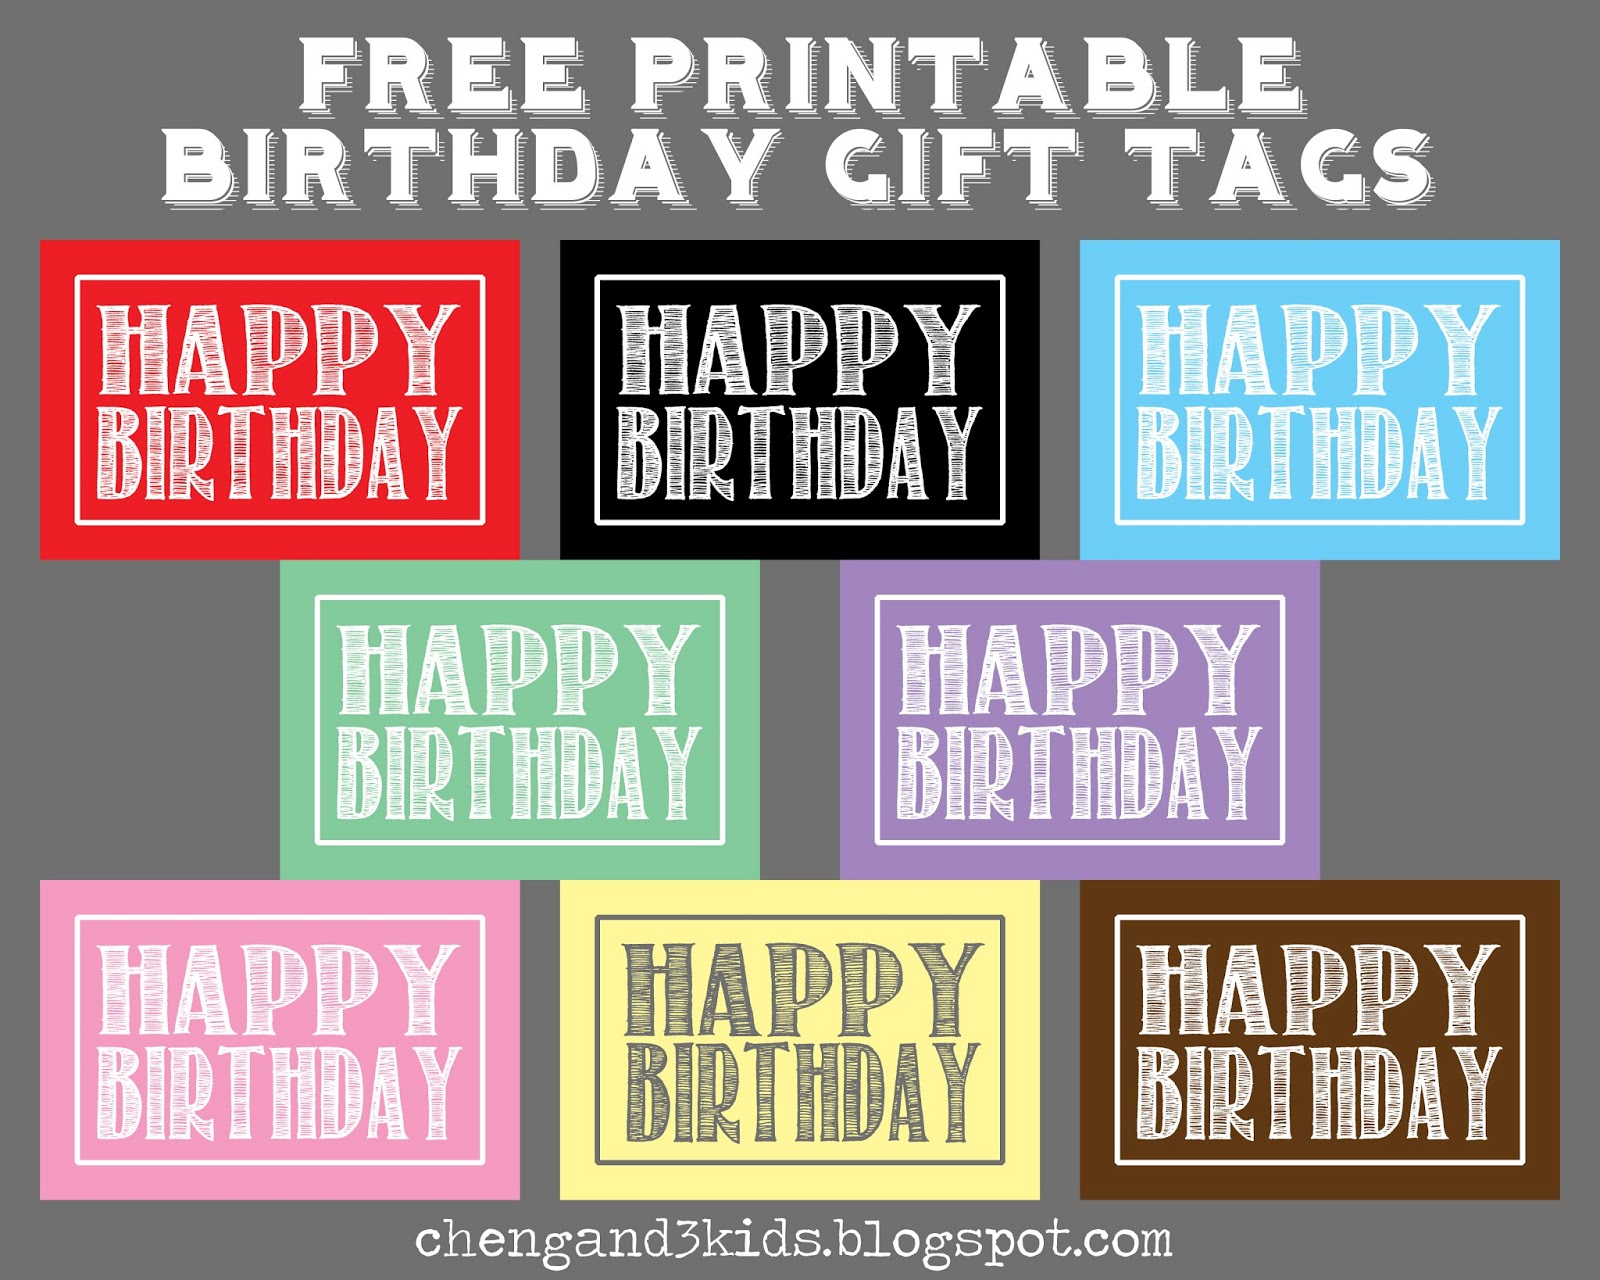 These Are Free Printable HAPPY BIRTHDAY Gift Tags It Comes In 8 Colors